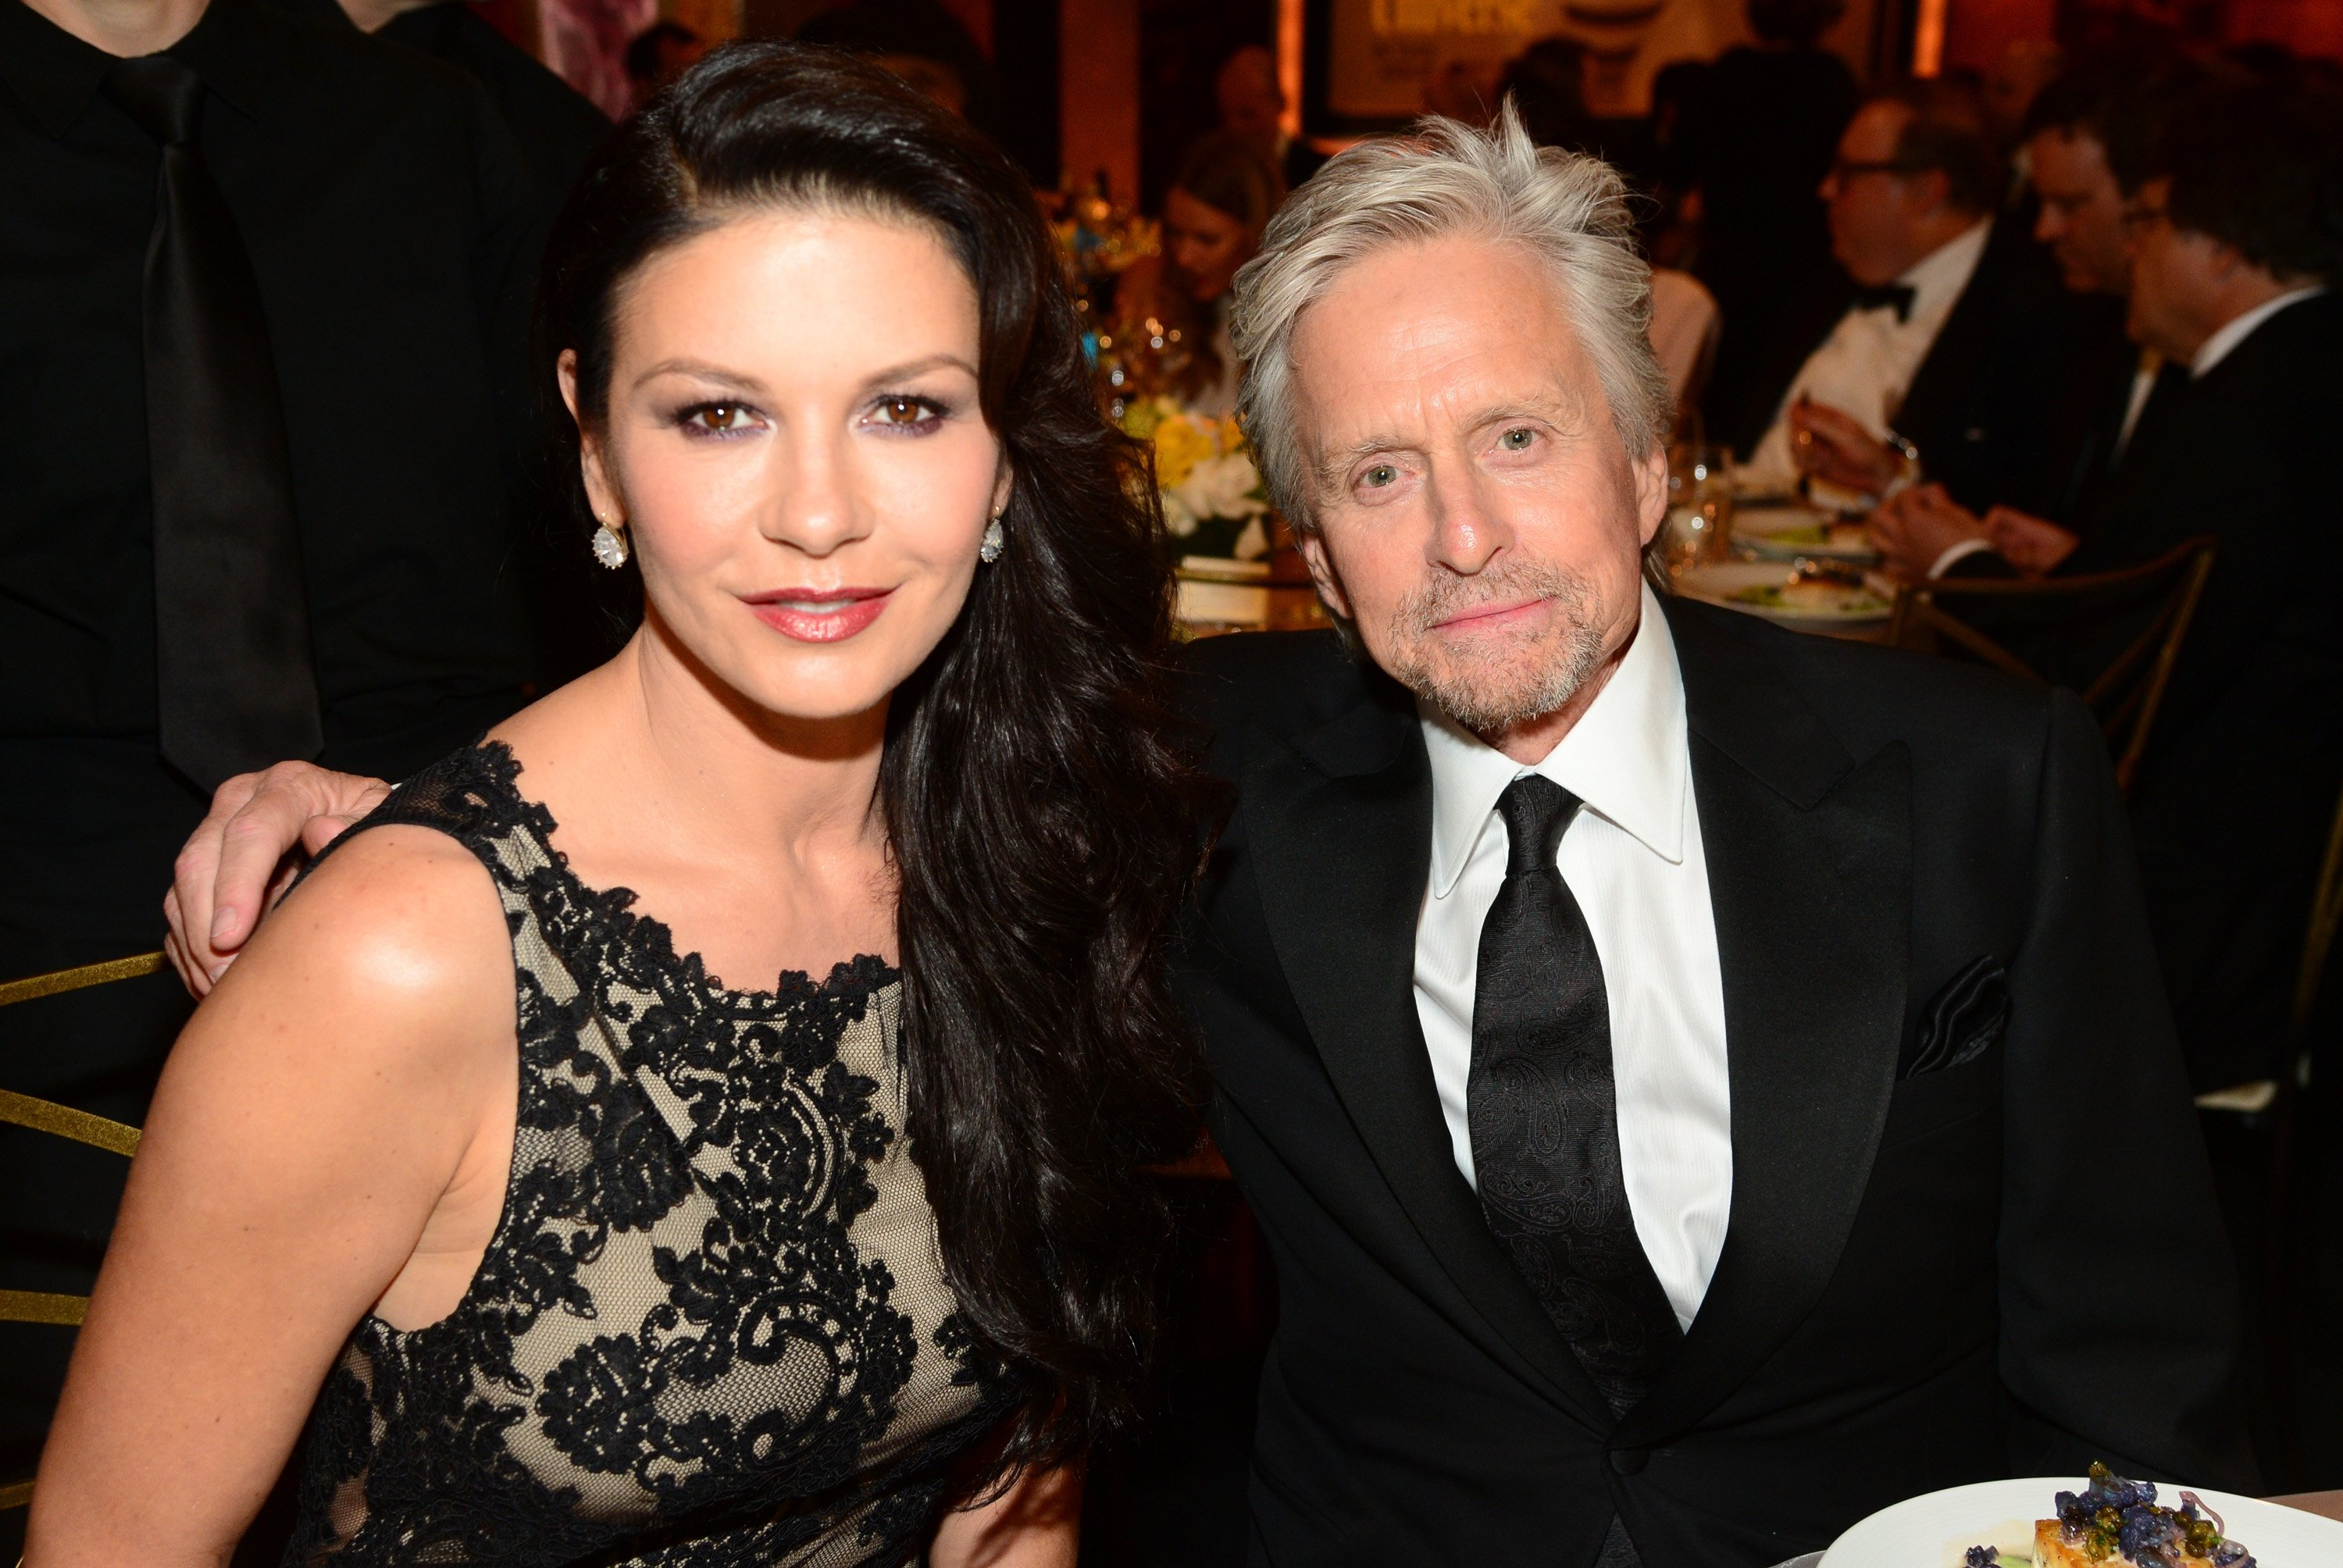 Catherine Zeta-Jones and Michael Douglas at the 2014 AFI Life Achievement Award: A Tribute to Jane Fonda on June 5, 2014 | Photo: GettyImages